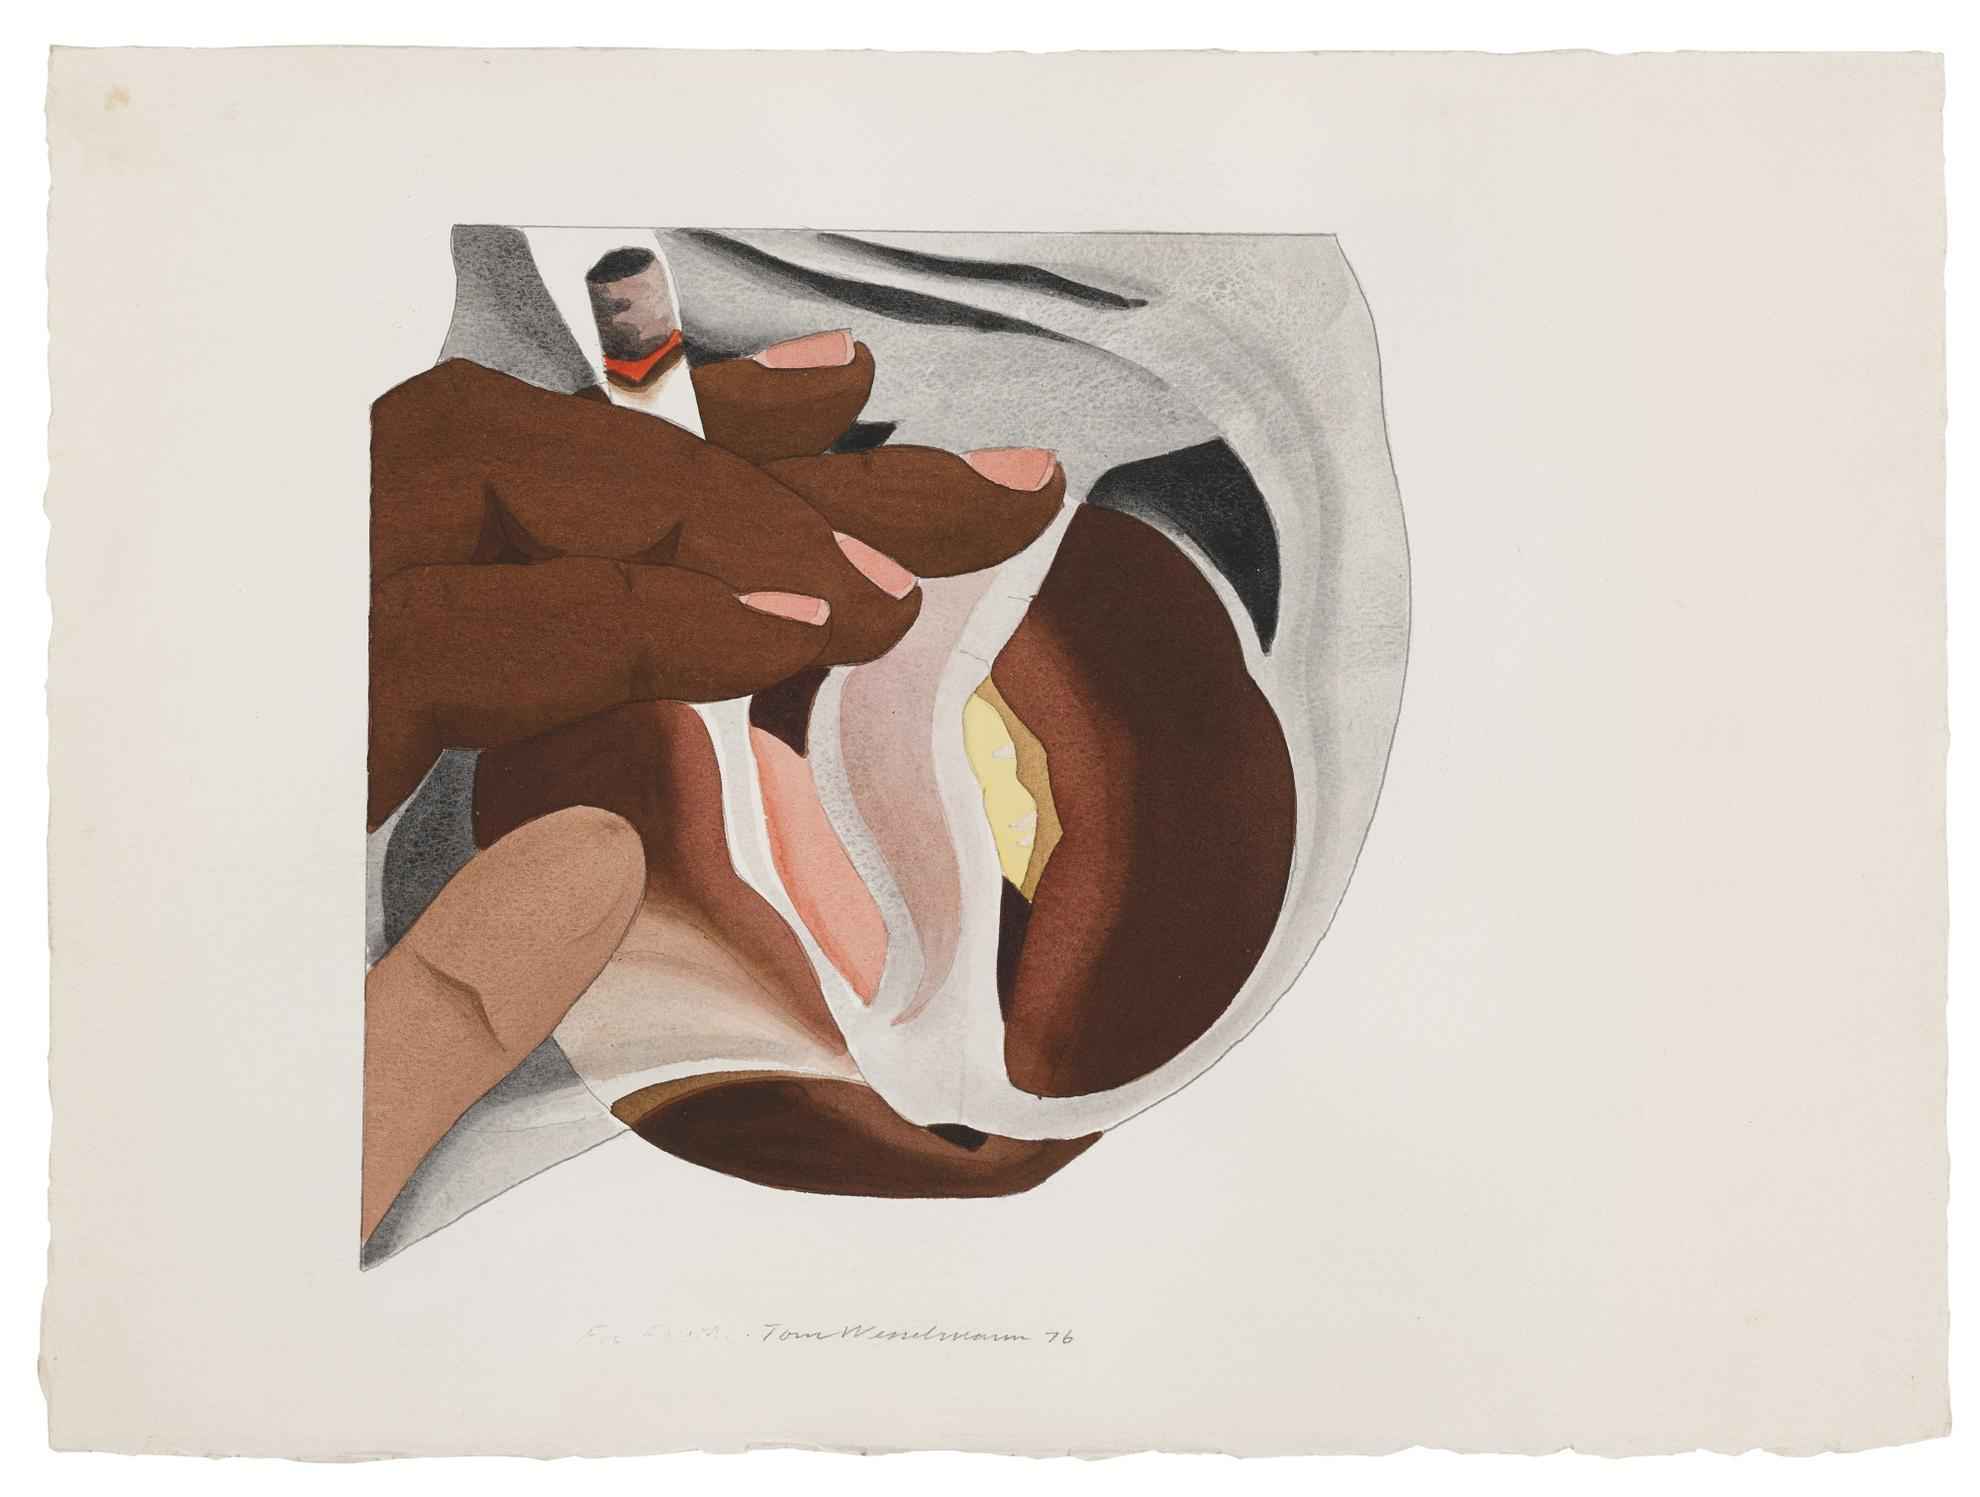 Tom Wesselmann-From Smoker #24-1976